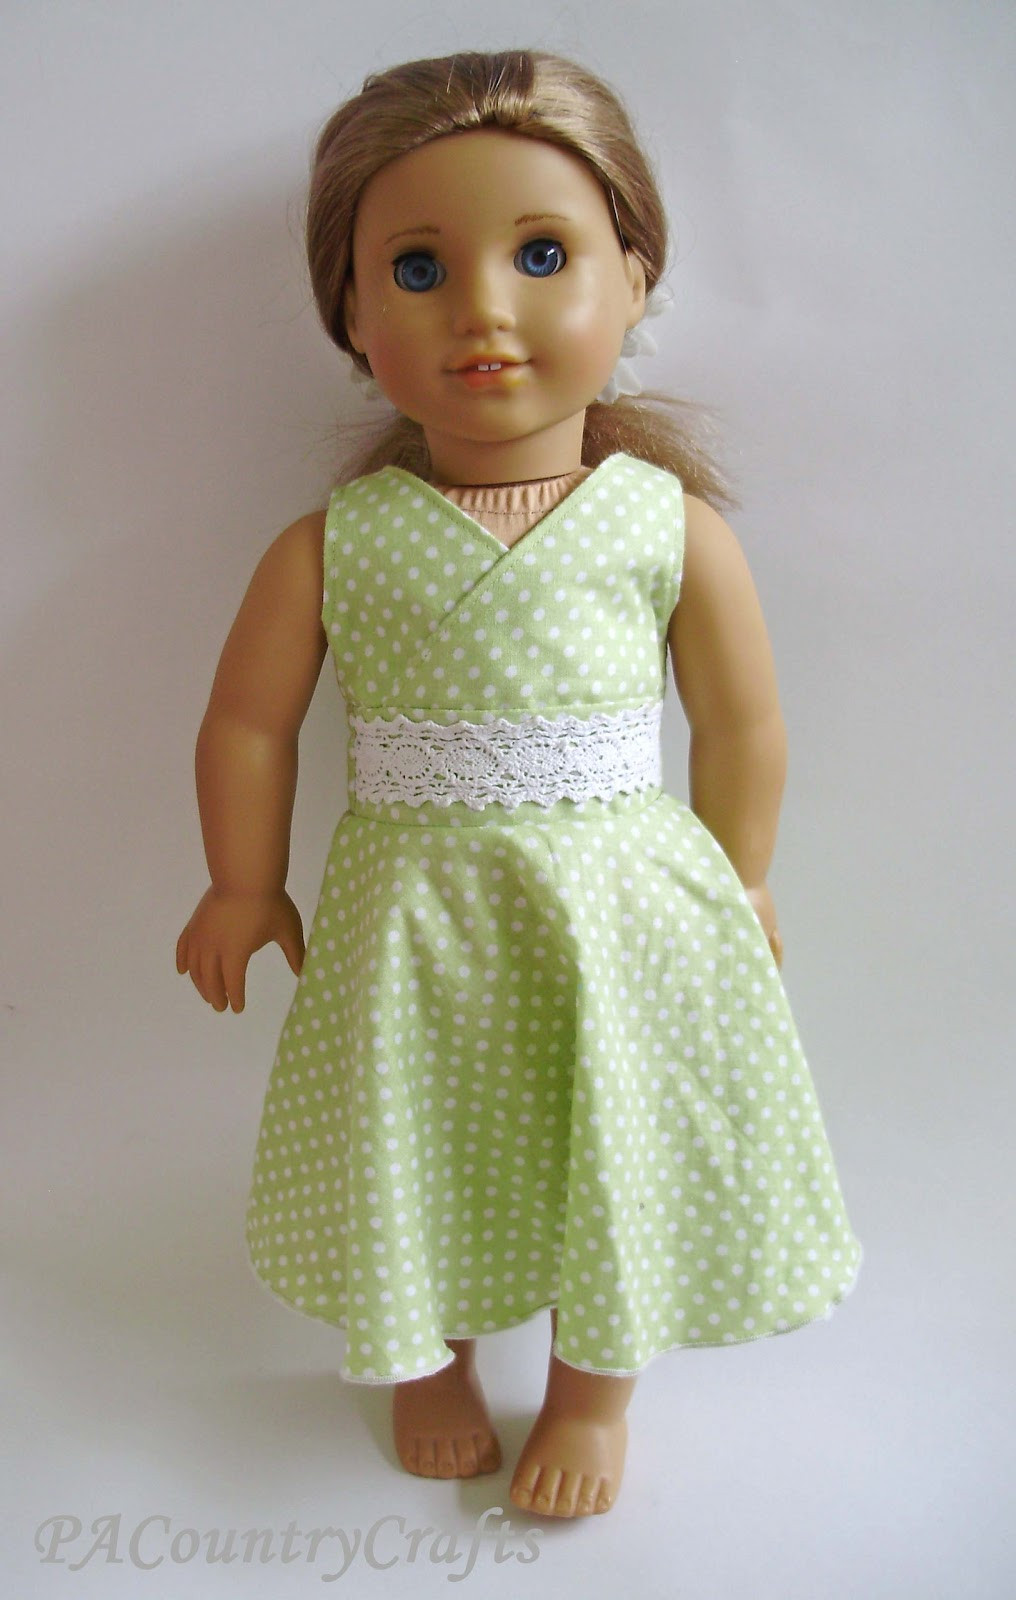 Doll Patterns Luxury Twirly Lace Doll Dress Pattern Of Doll Patterns Unique Knitting Patterns Dolls Clothes